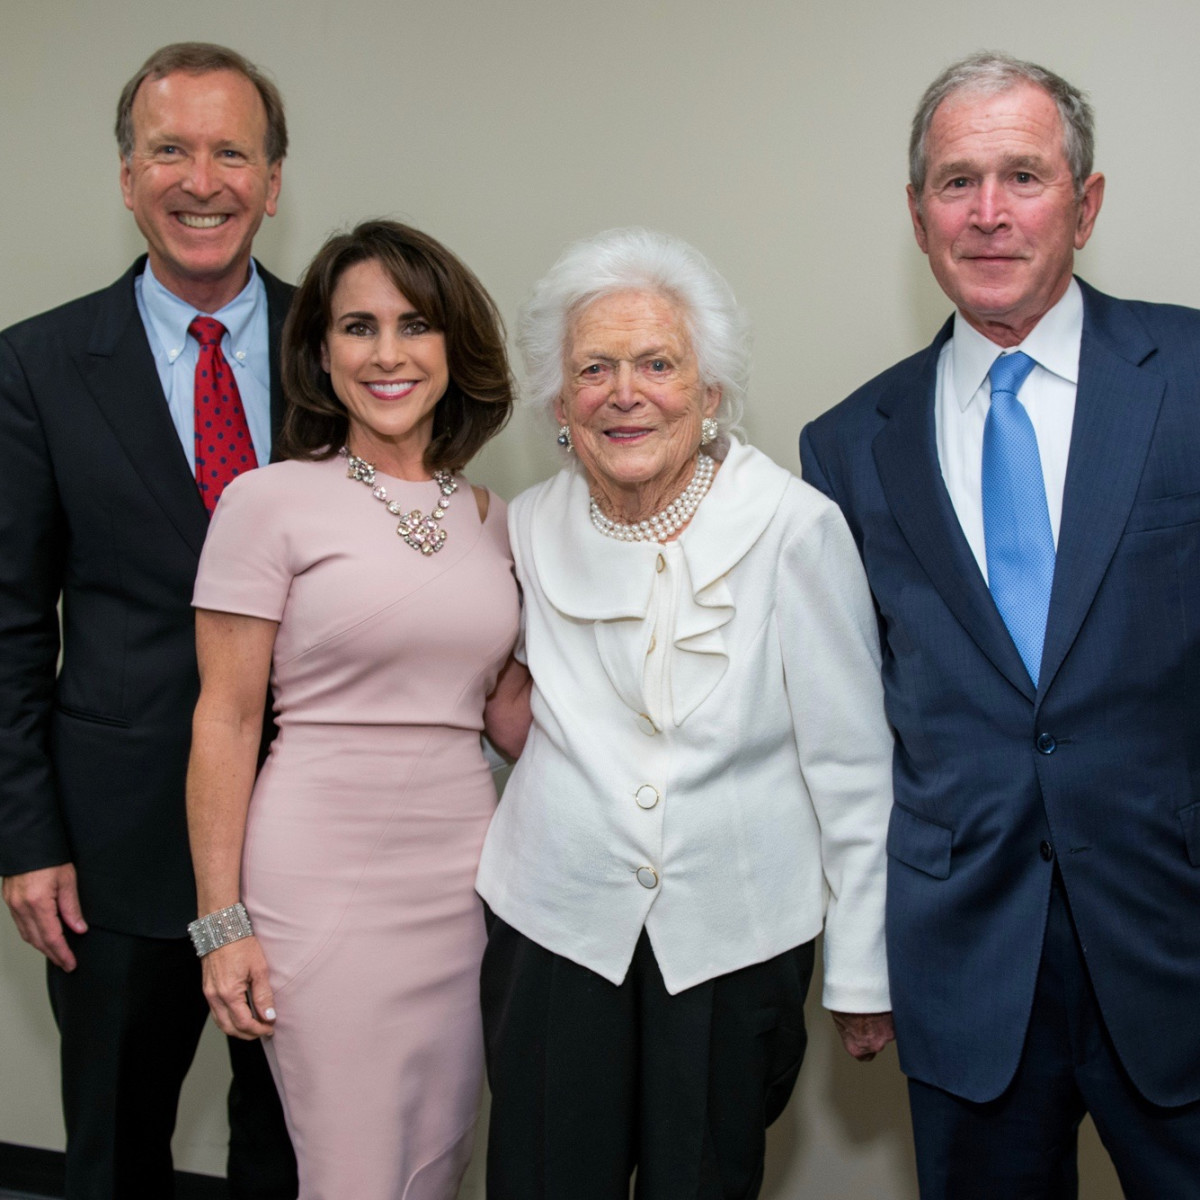 Celebration of Reading 2017: Neil and Maria Bush, Barbara Bush, Former President George W. Bush